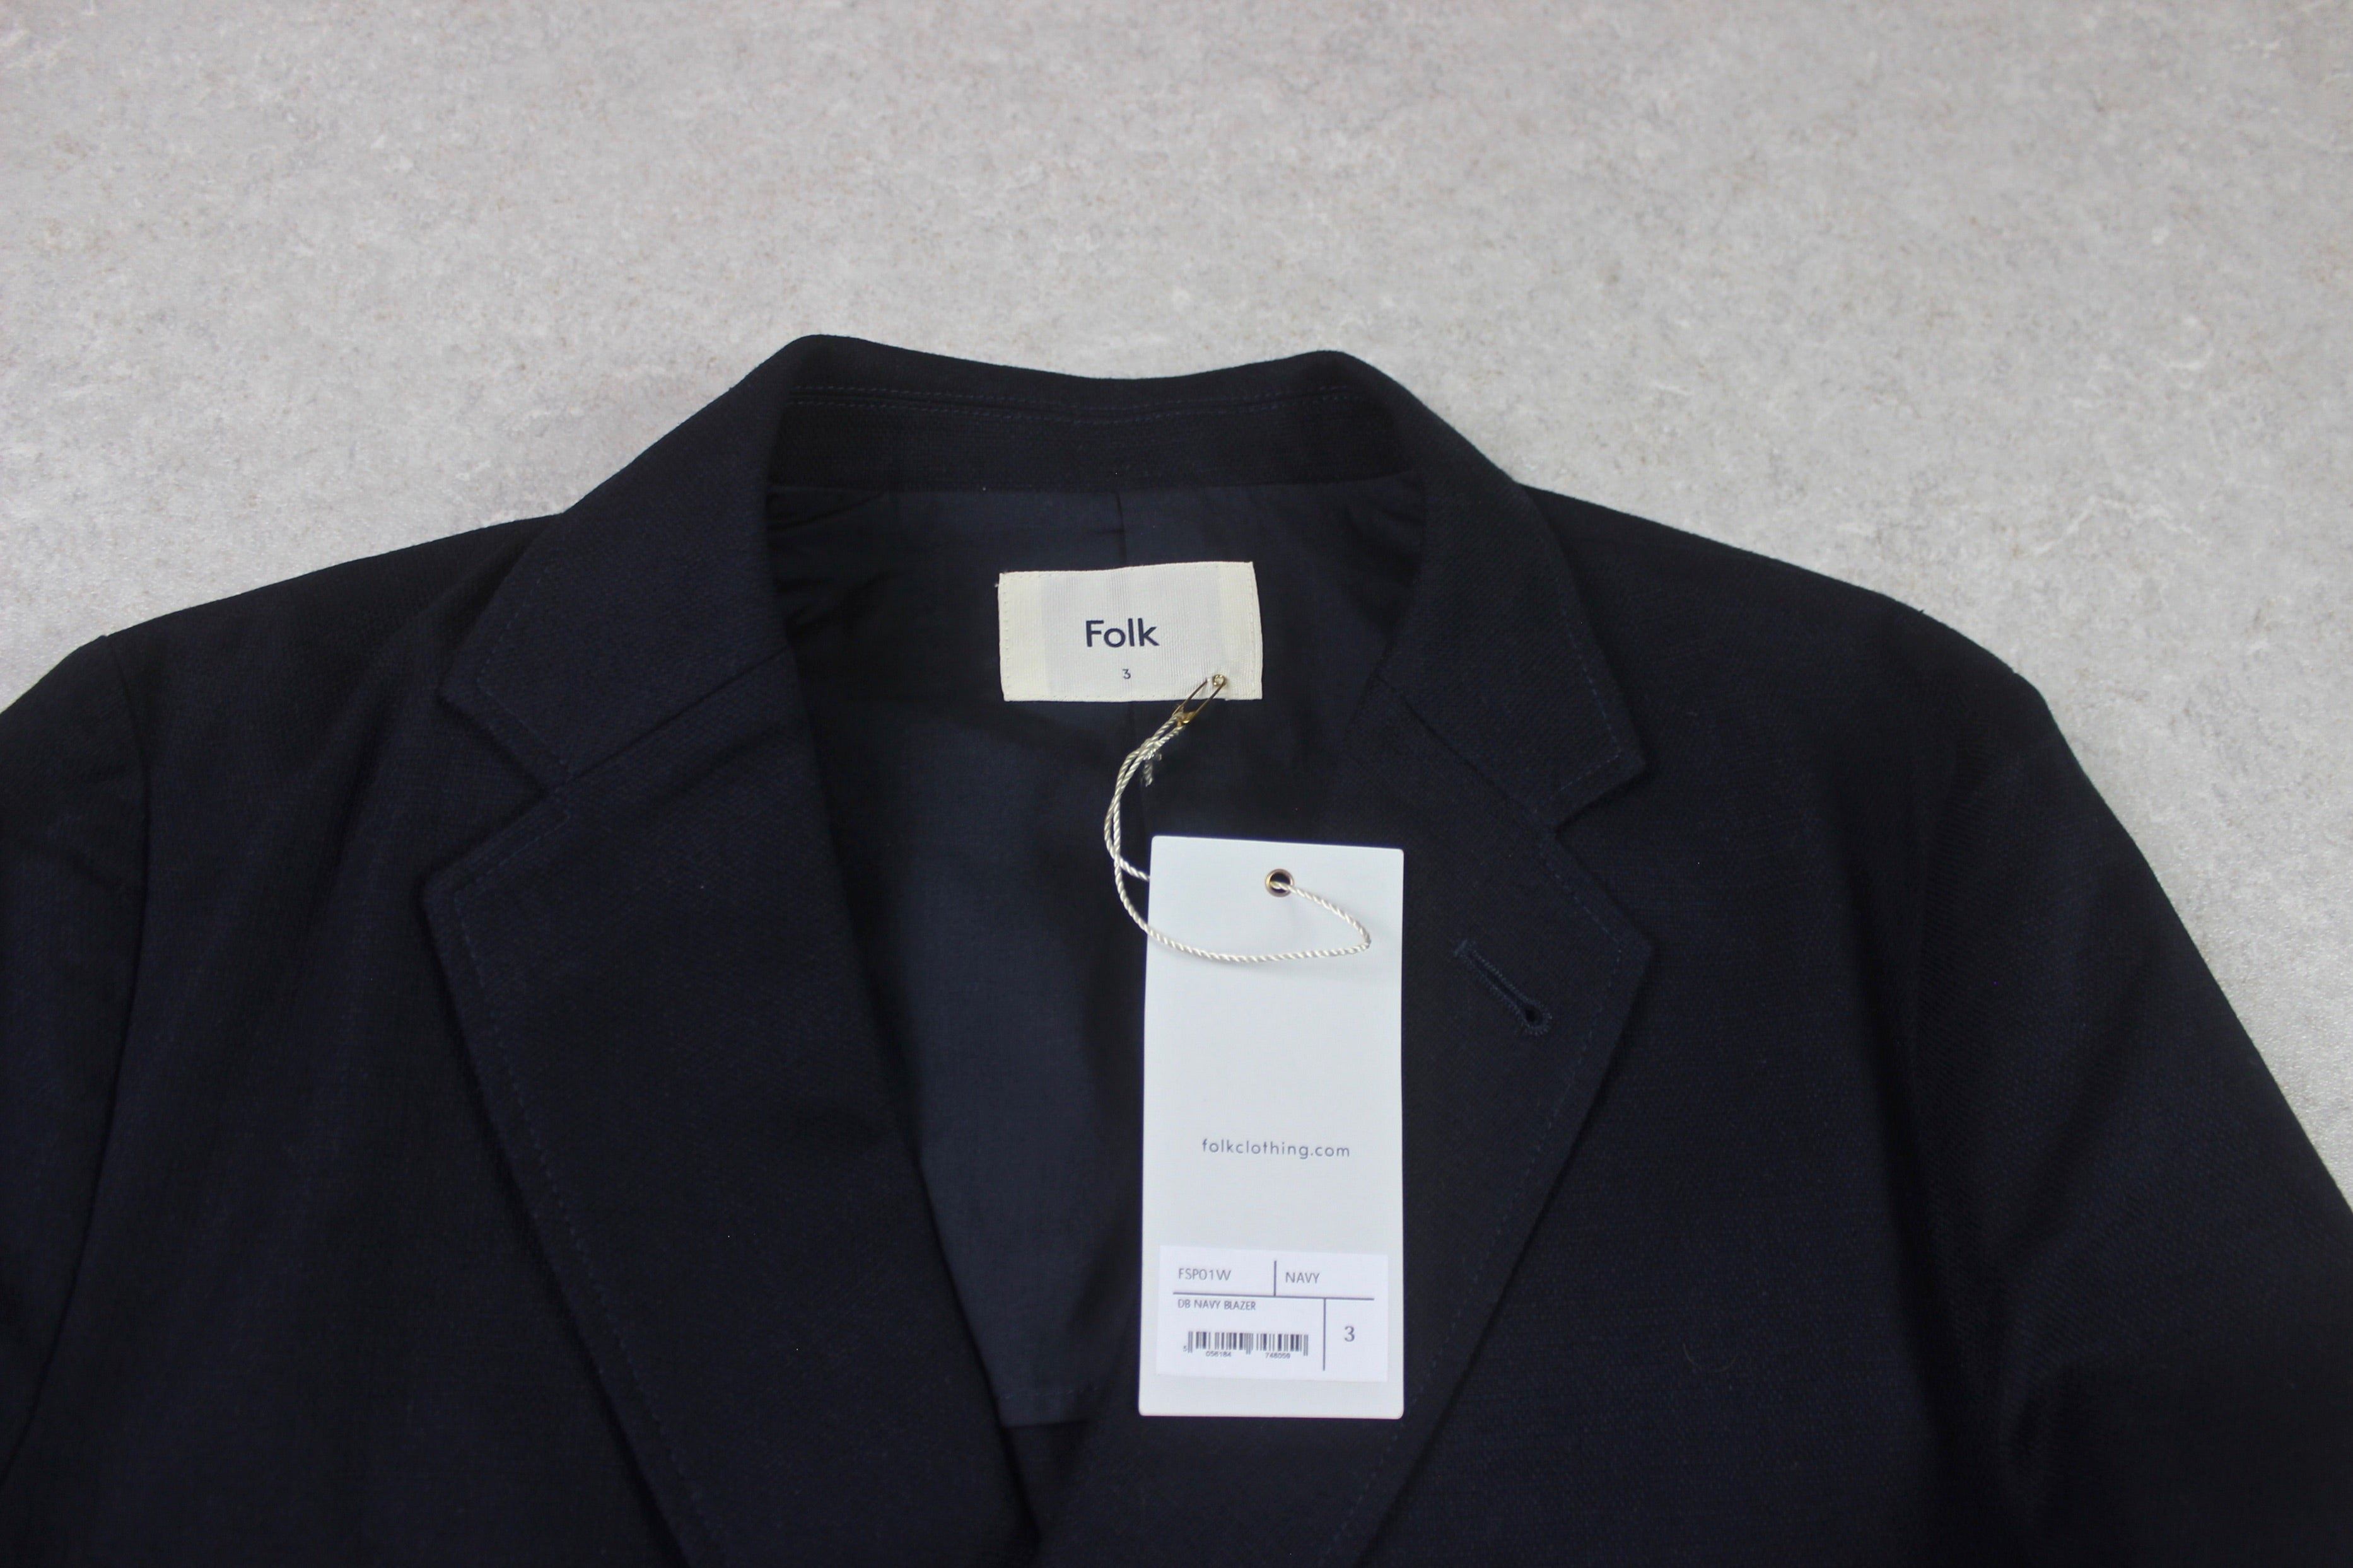 Folk - Double Breasted Blazer Jacket - Navy Blue - 3/Medium - Brand New